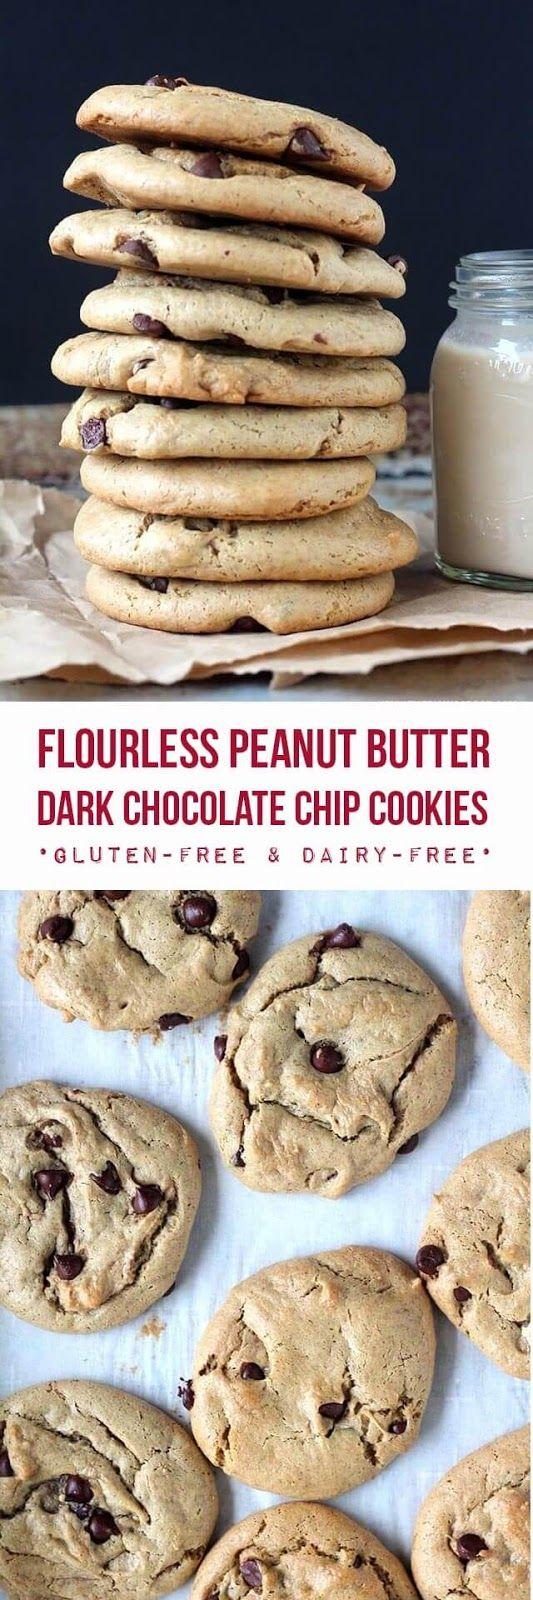 Easy flourless peanut butter cookies studded with dark chocolate chips and sweetened with maple syrup. These cookies are incredibly soft, full of rich peanut butter flavor, and they develop a wonderful chewiness the day after baking them. | Gluten-Free | Grain-Free | Real Food Recipes |